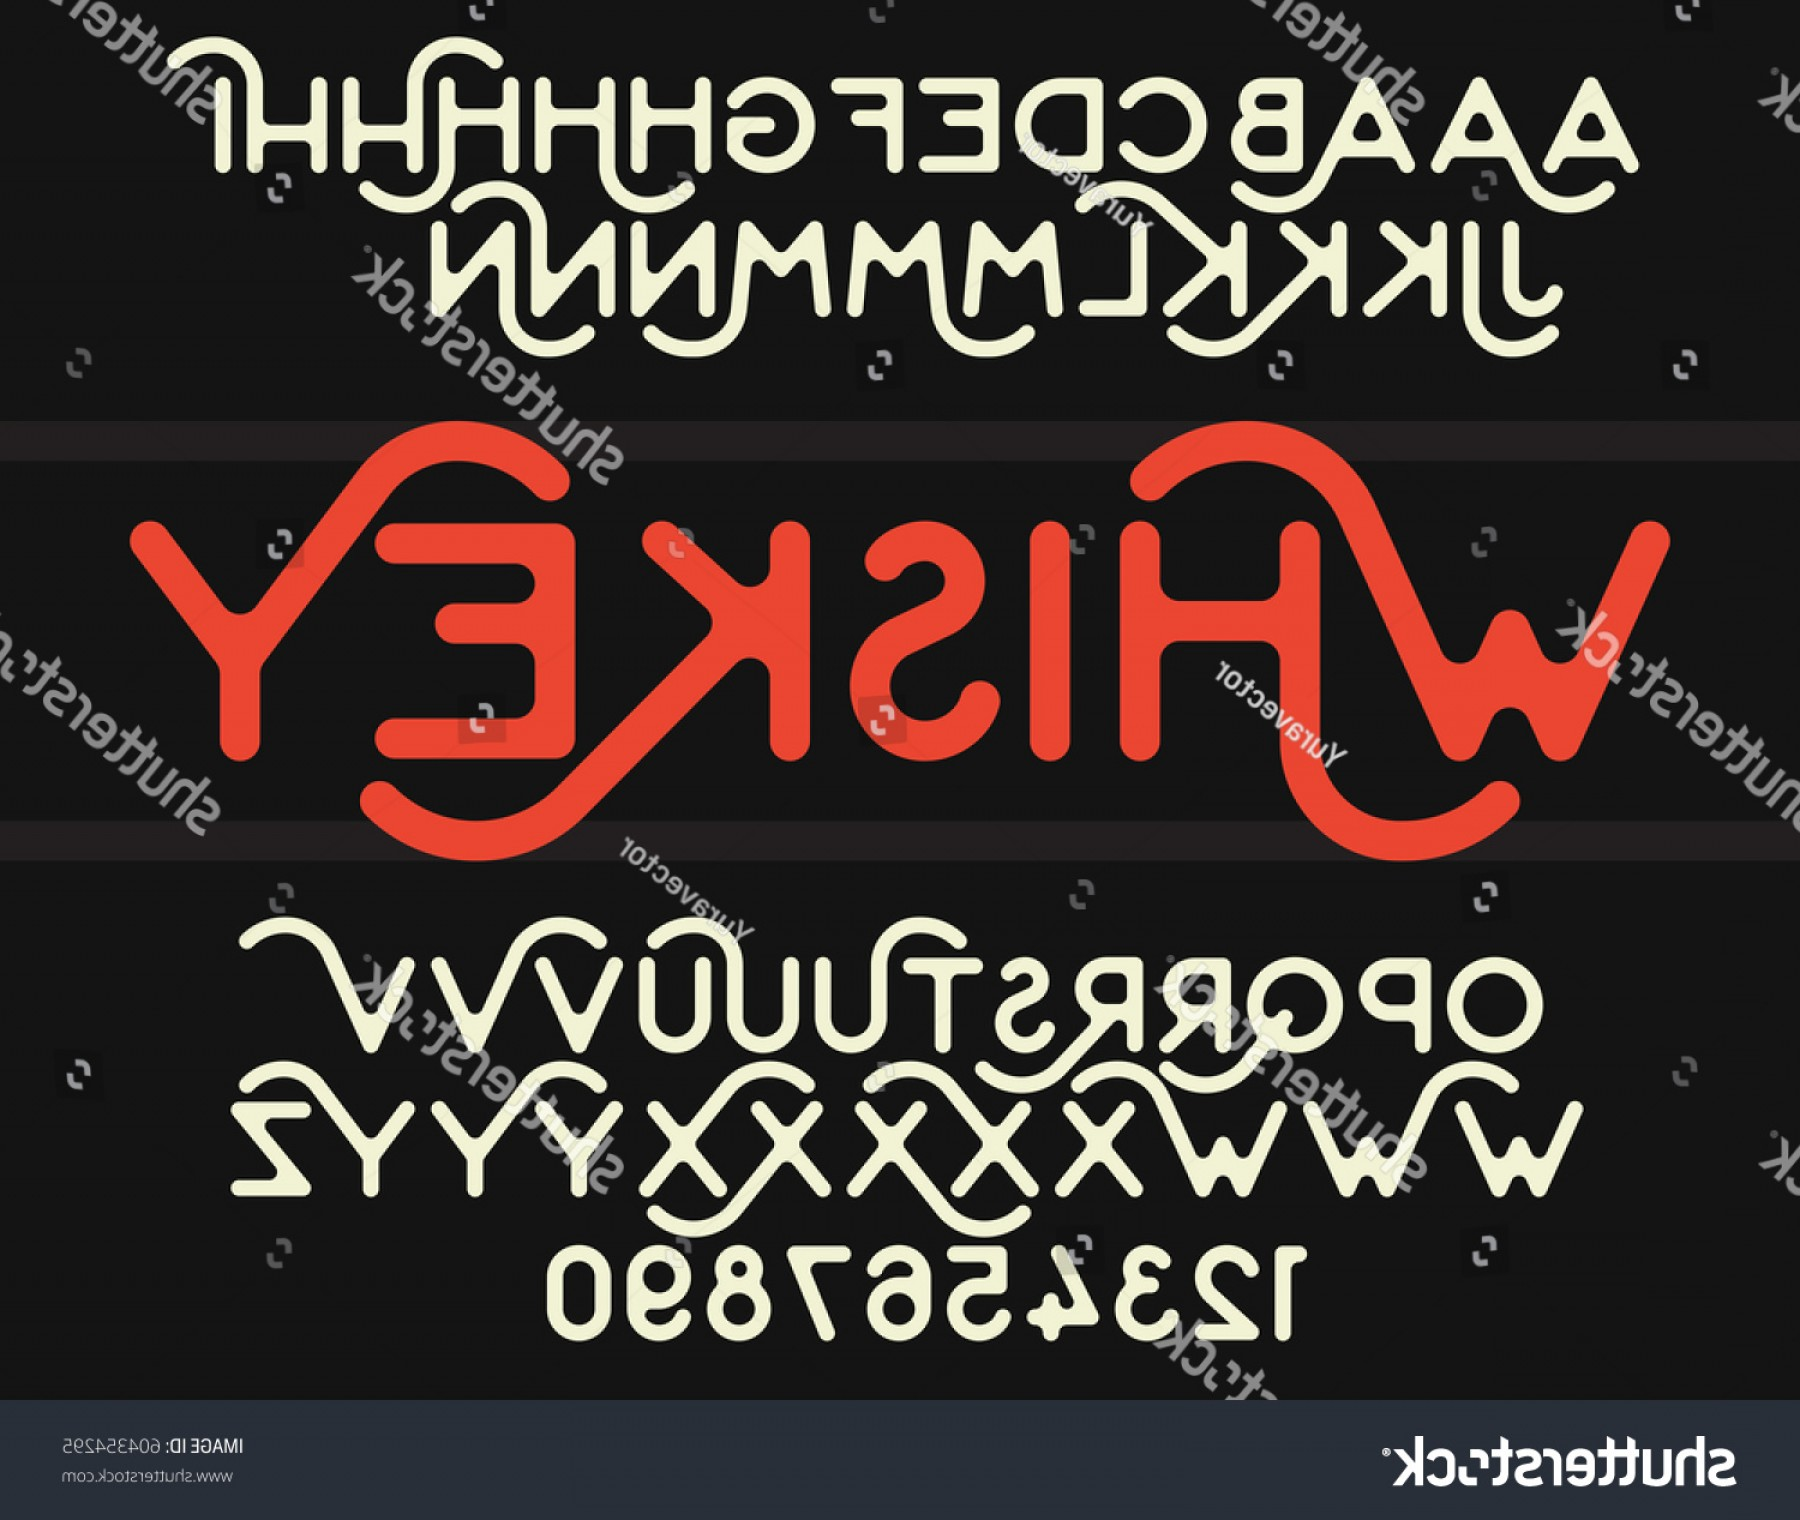 Decorative Font Vector Illustration: Vintage Decorative Font Rounded Corners Vector